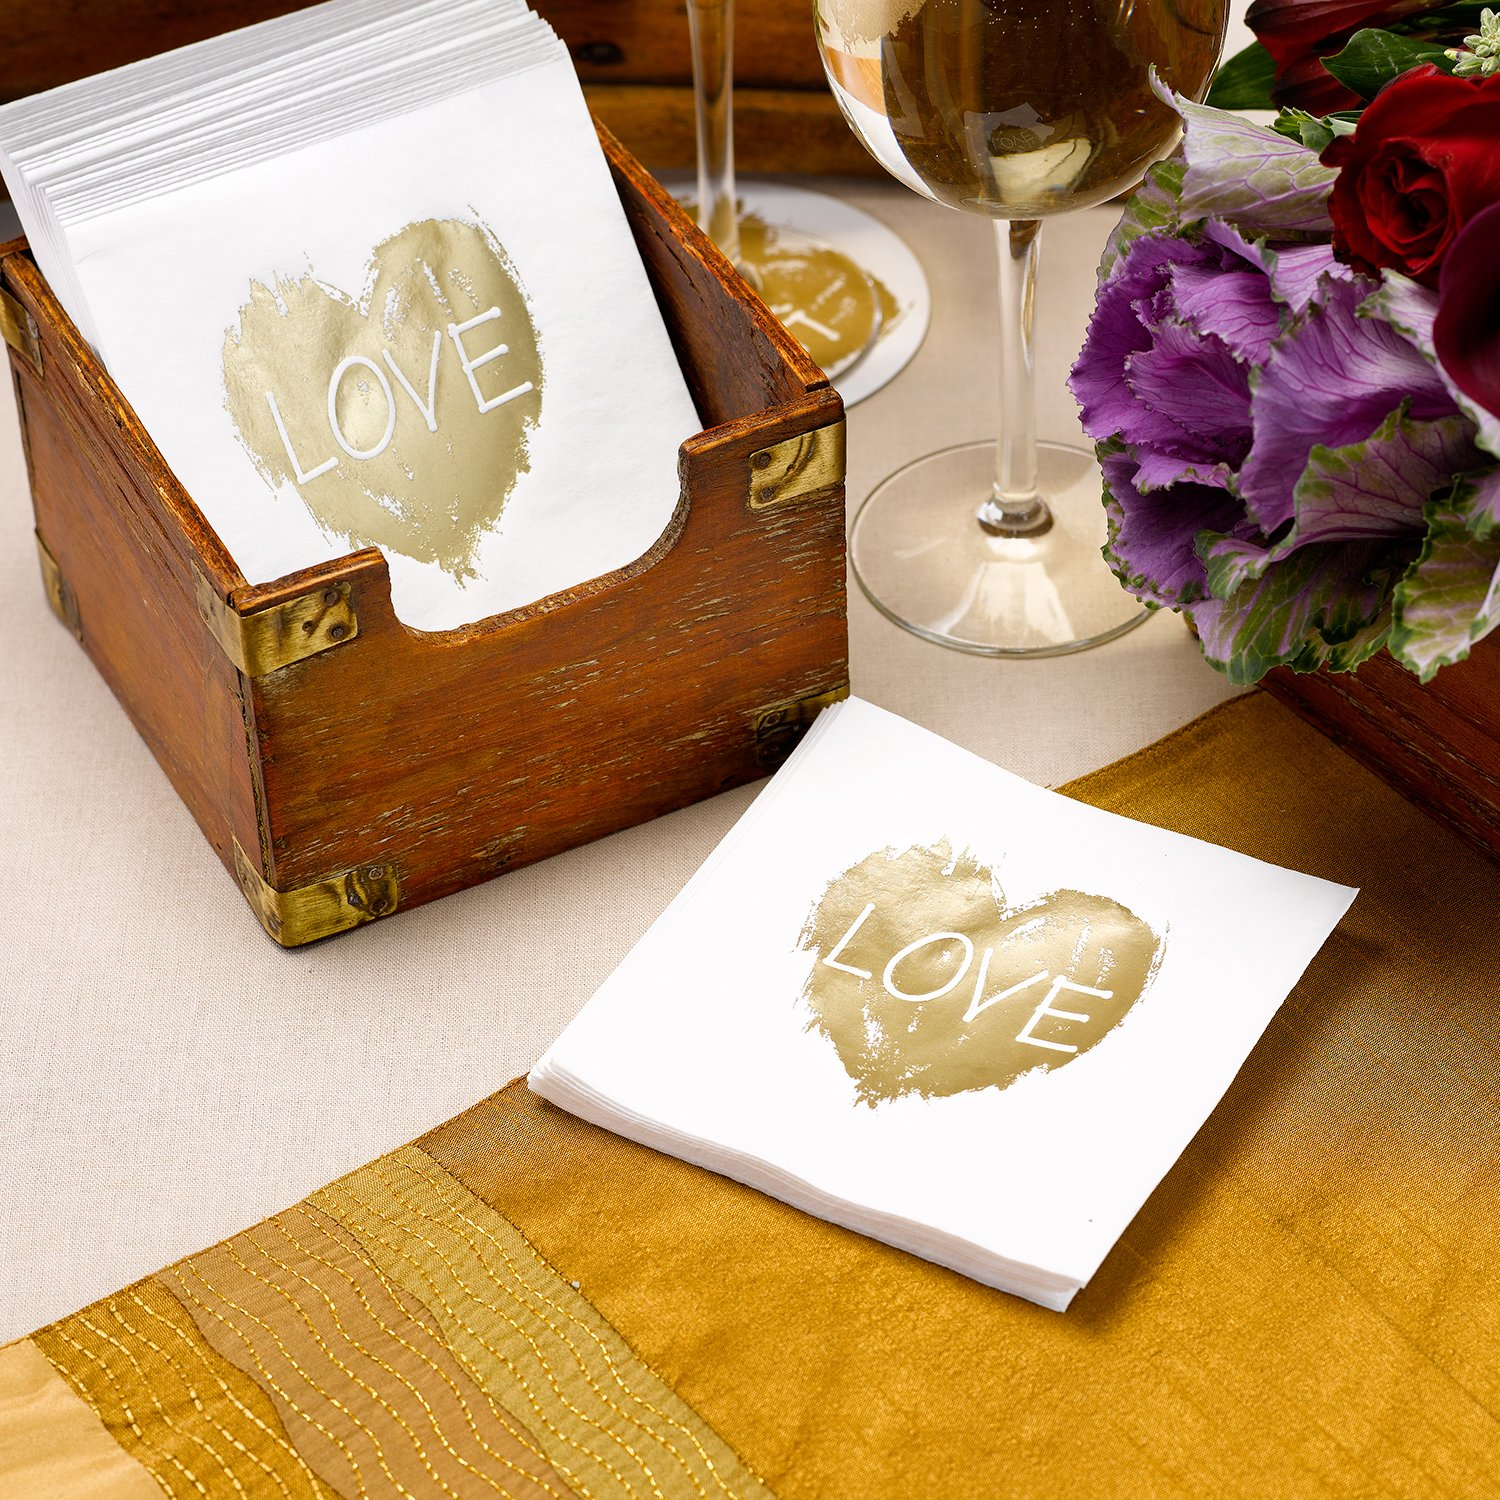 Hortense B. Hewitt 50 Count Brush of Love Napkins, Gold by Hortense B. Hewitt (Image #2)